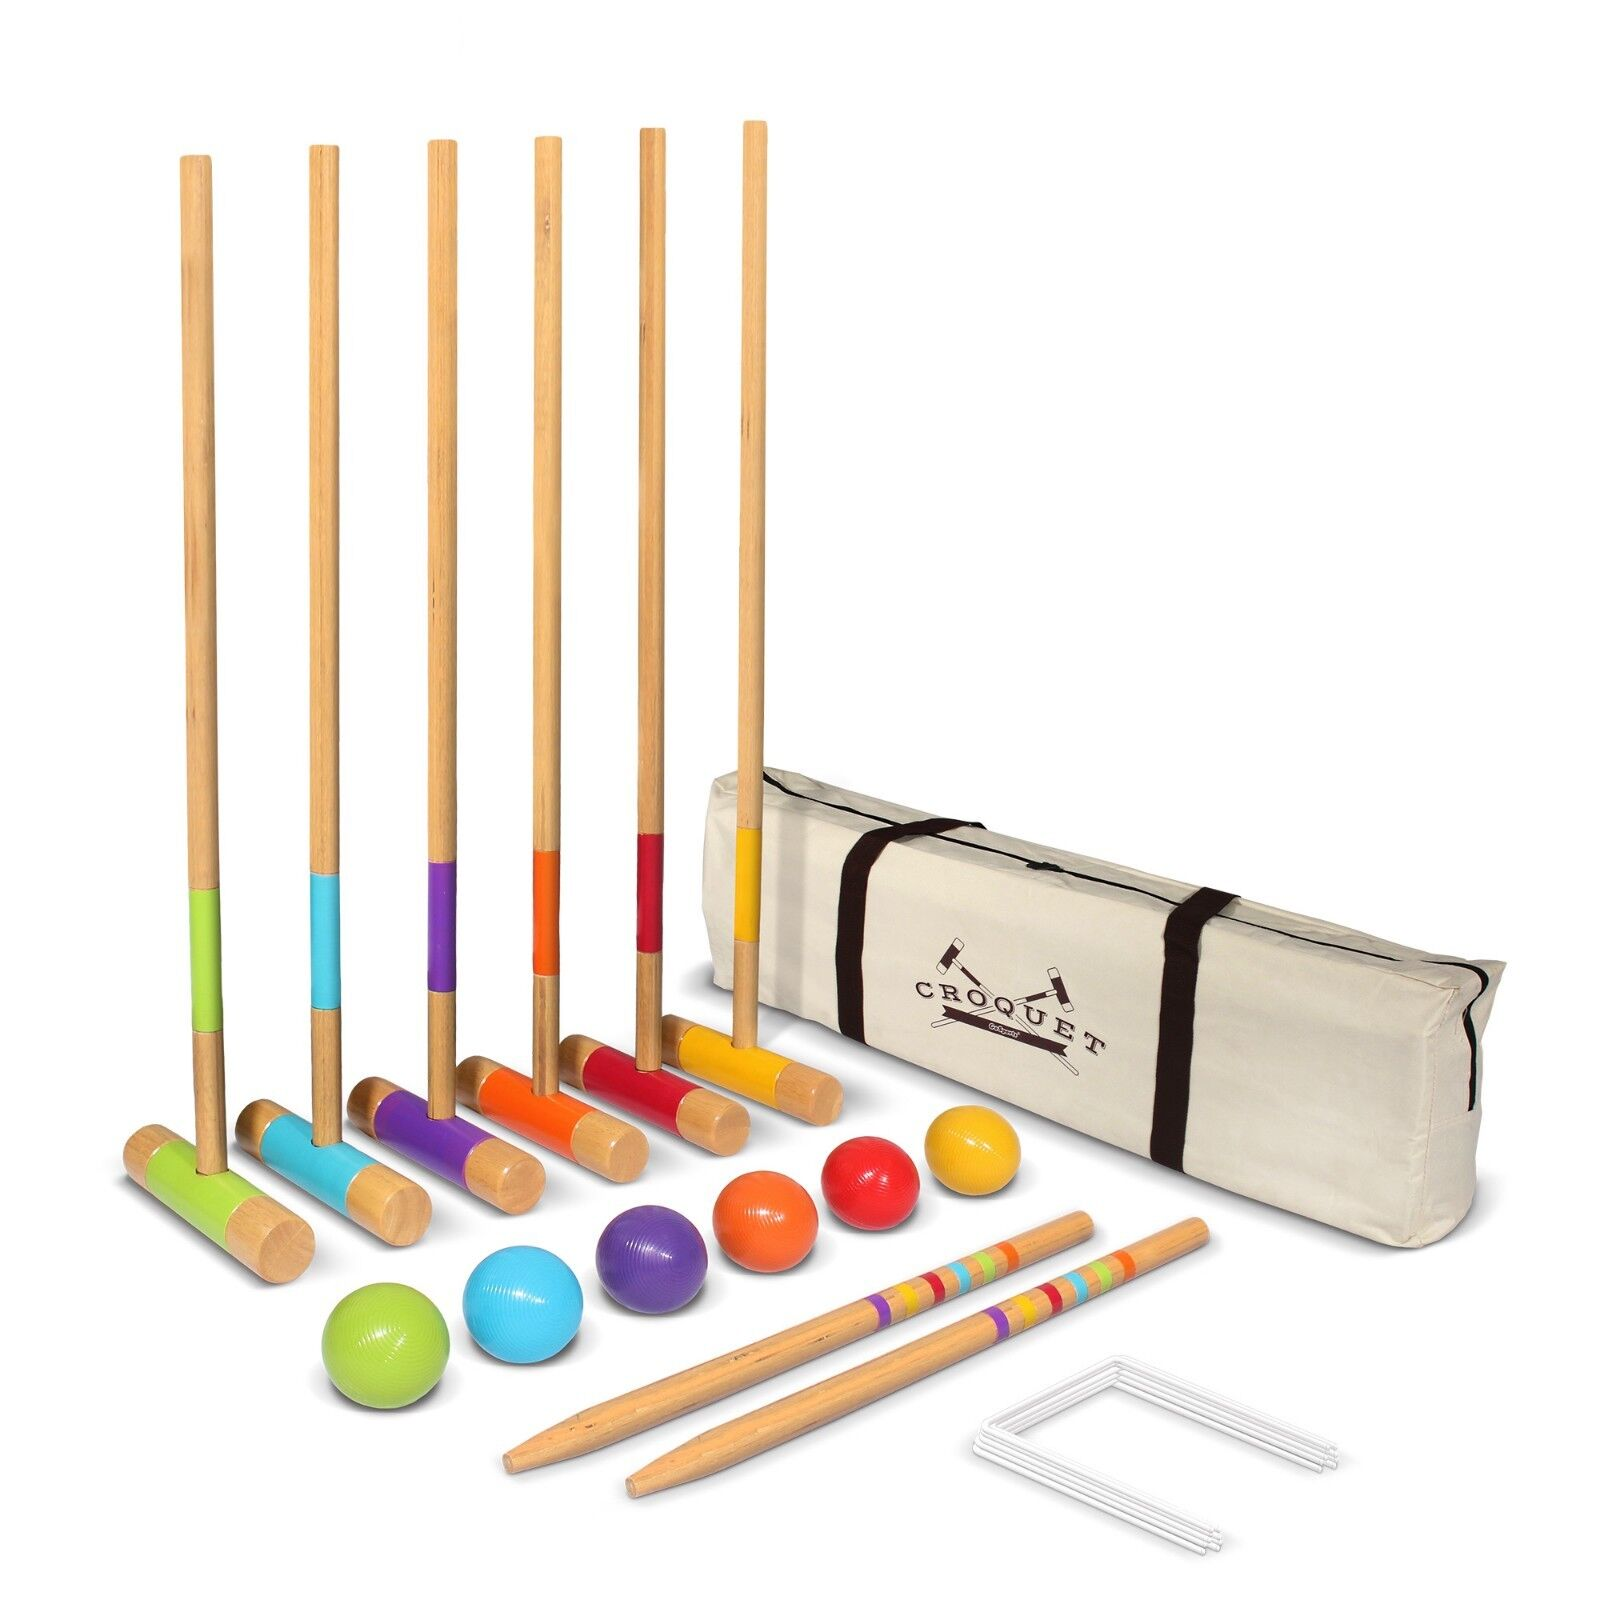 Portable  Standard Wooden Lawn Croquet Set - 27  Mallets for Kids and Adults  up to 60% discount